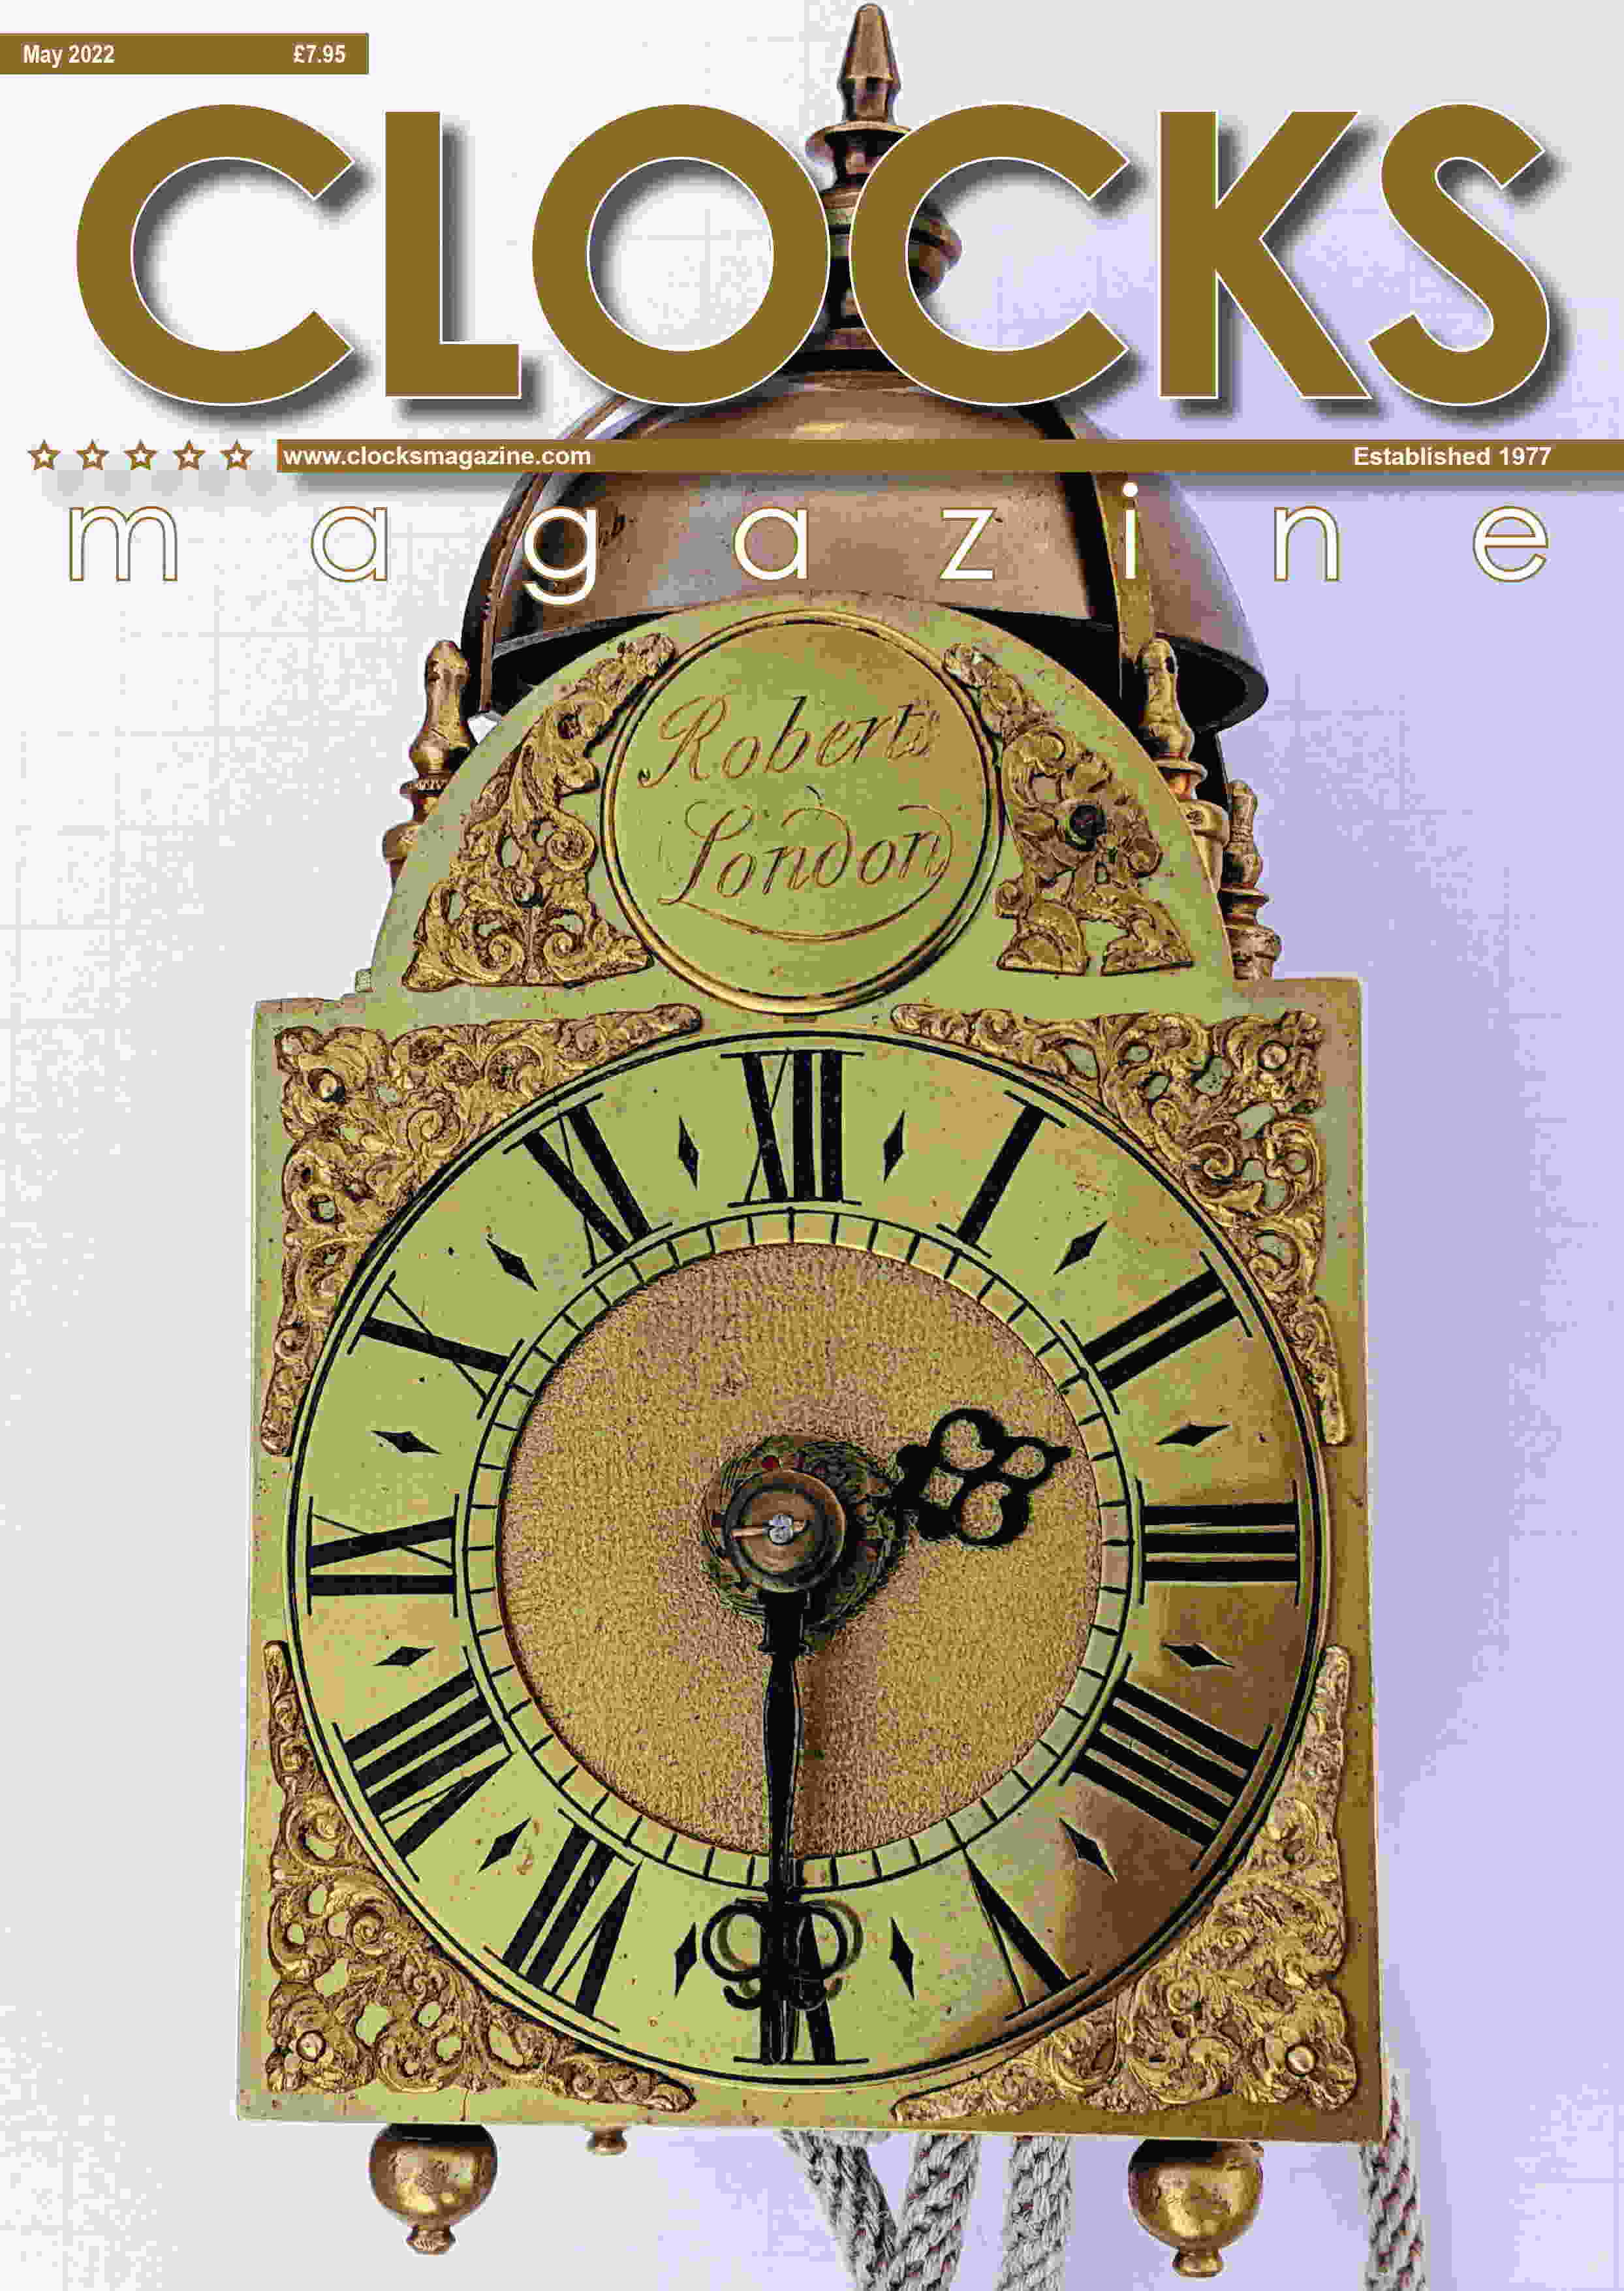 Cover of current issue of Clocks, home page